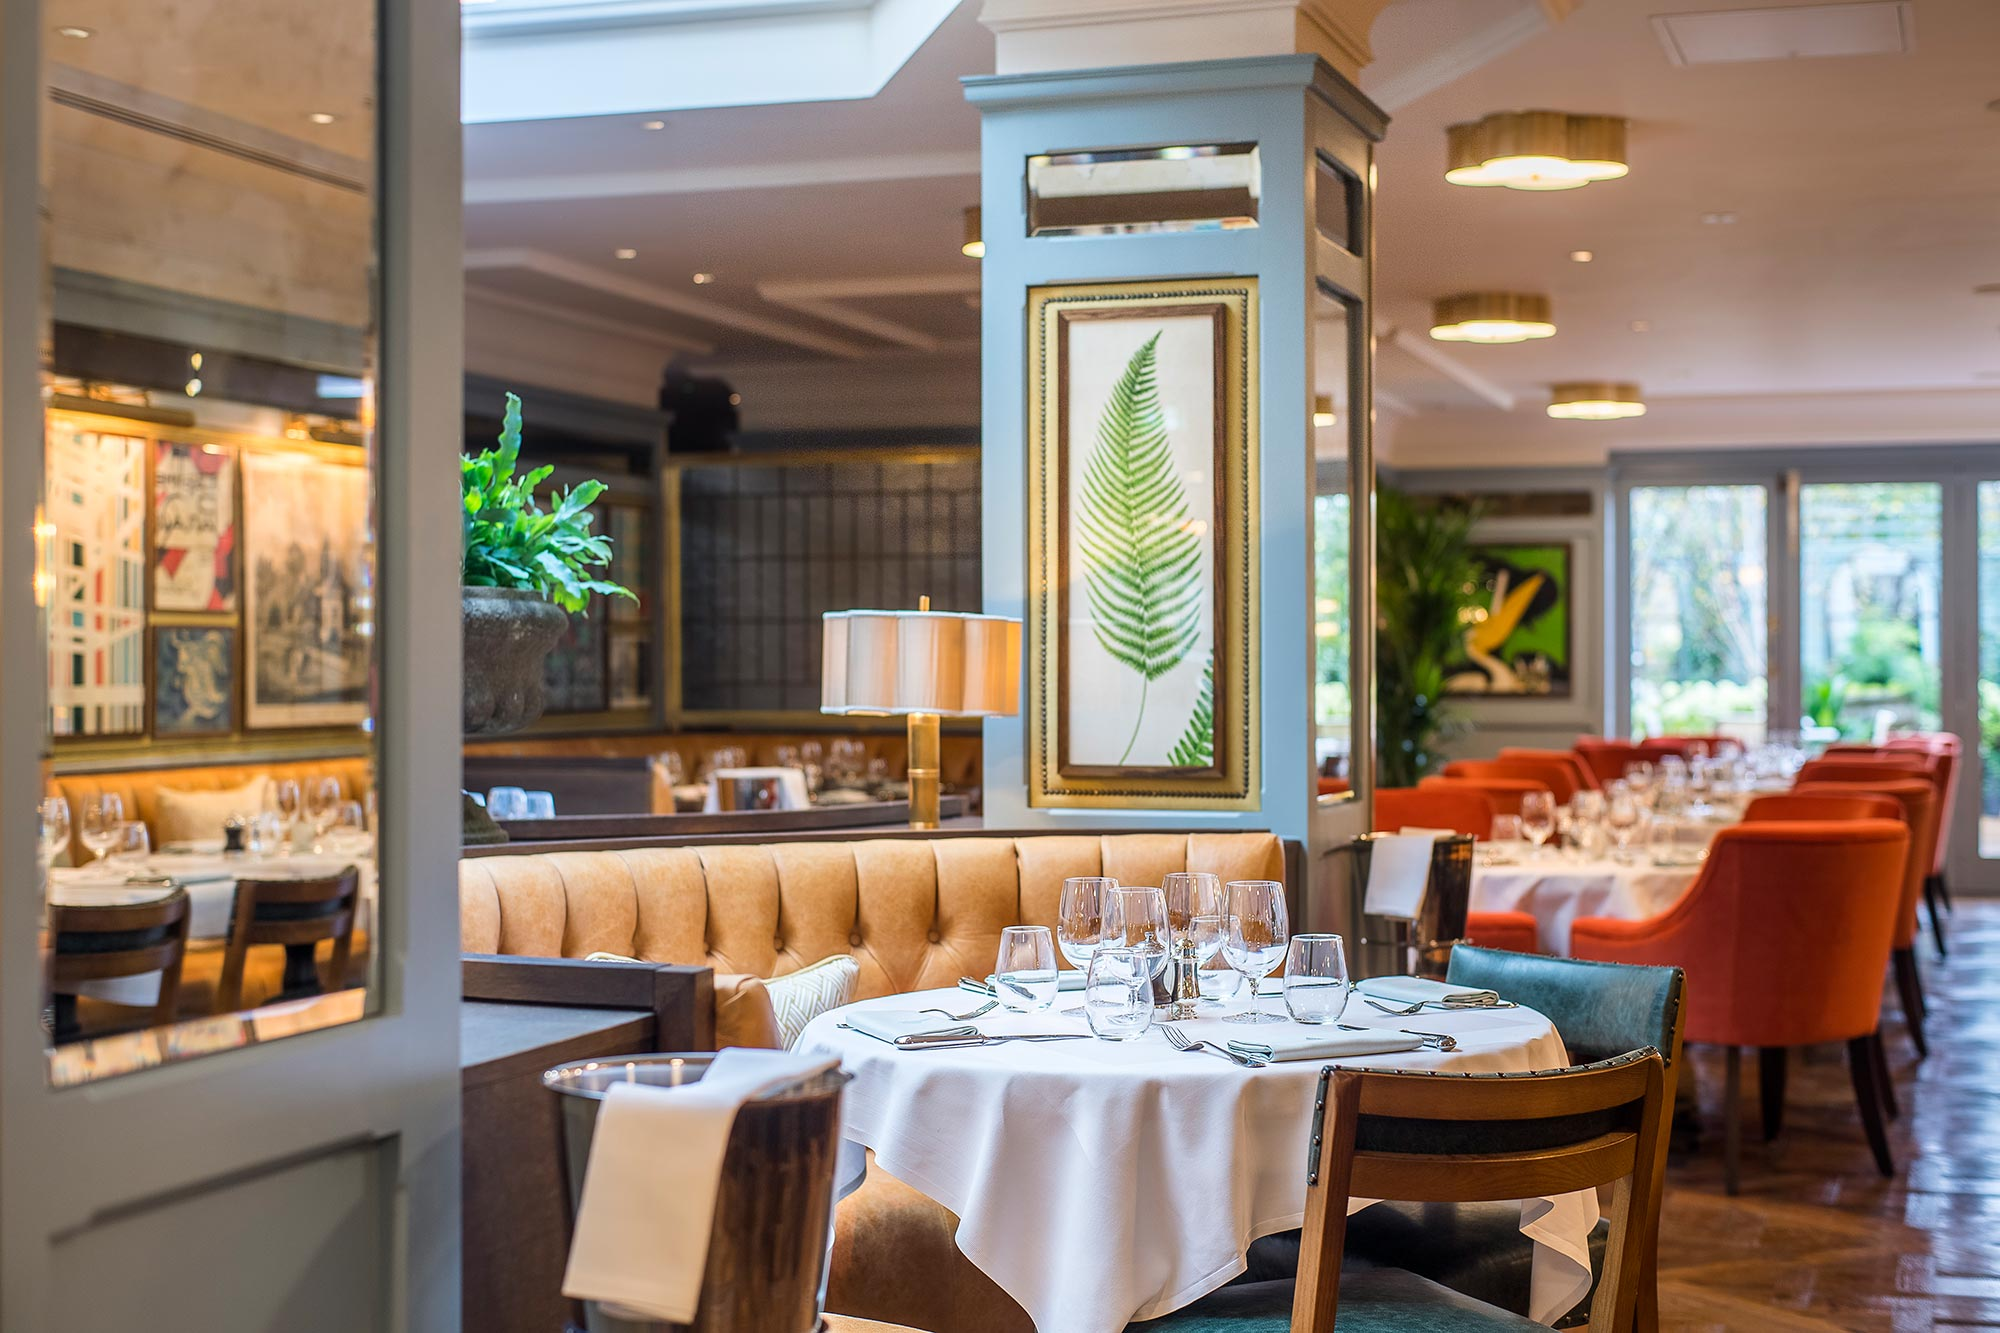 Restaurant in Harrogate - The Ivy Collection - The Ivy Harrogate